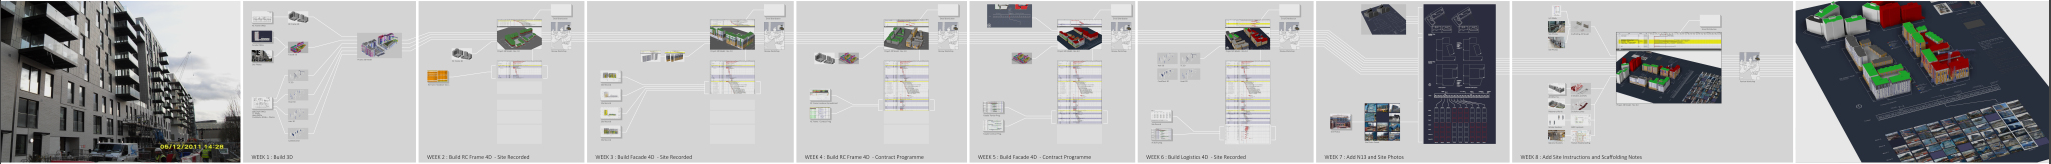 DETAILED WORK PROCESS MAP SHOWING 2D INFORMATION AND DOCUMENTS USED TO CREATE THE 4D MODEL